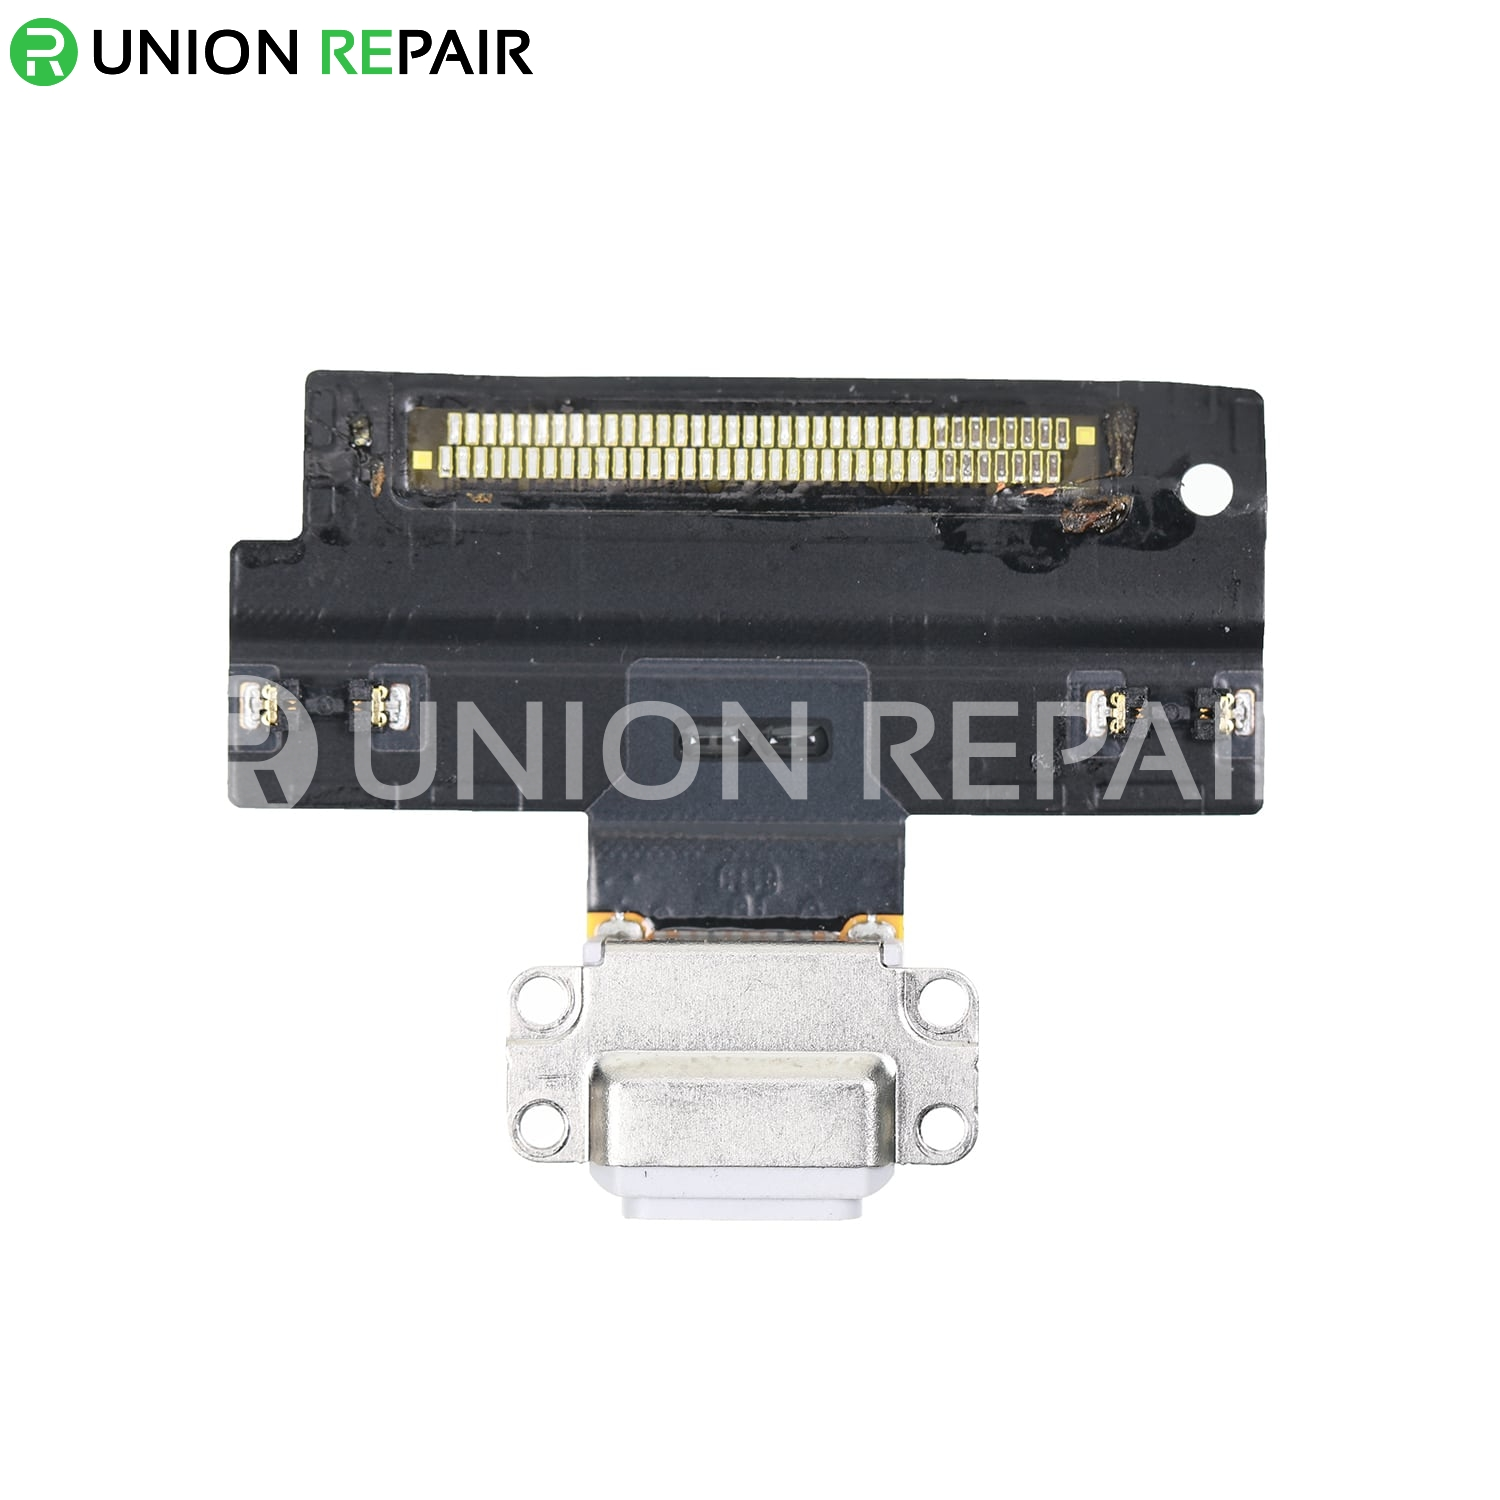 Replacement for iPad Air 3 Charging Connector Flex Cable - White